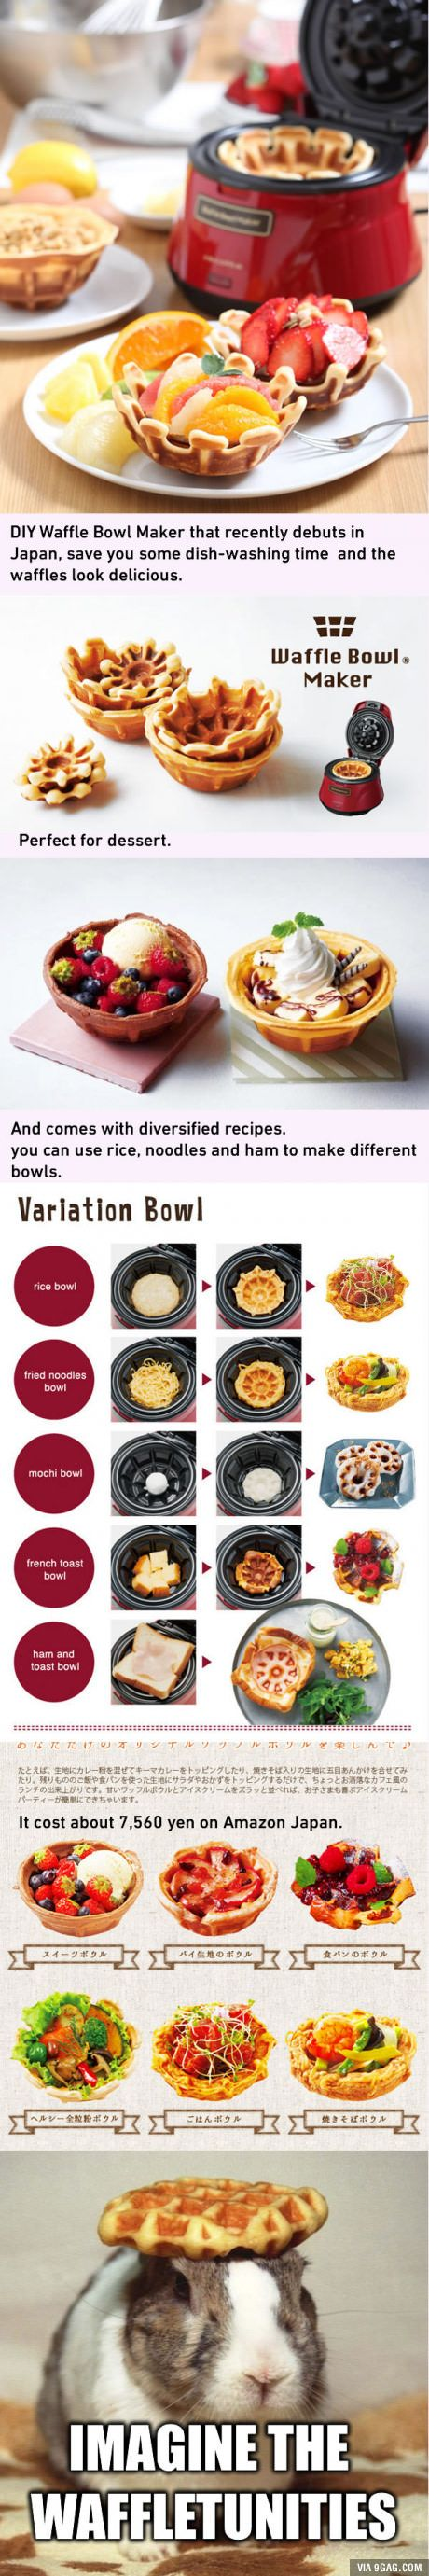 Imagine The Waffletunities! Japan Invented Waffle Bowl Maker